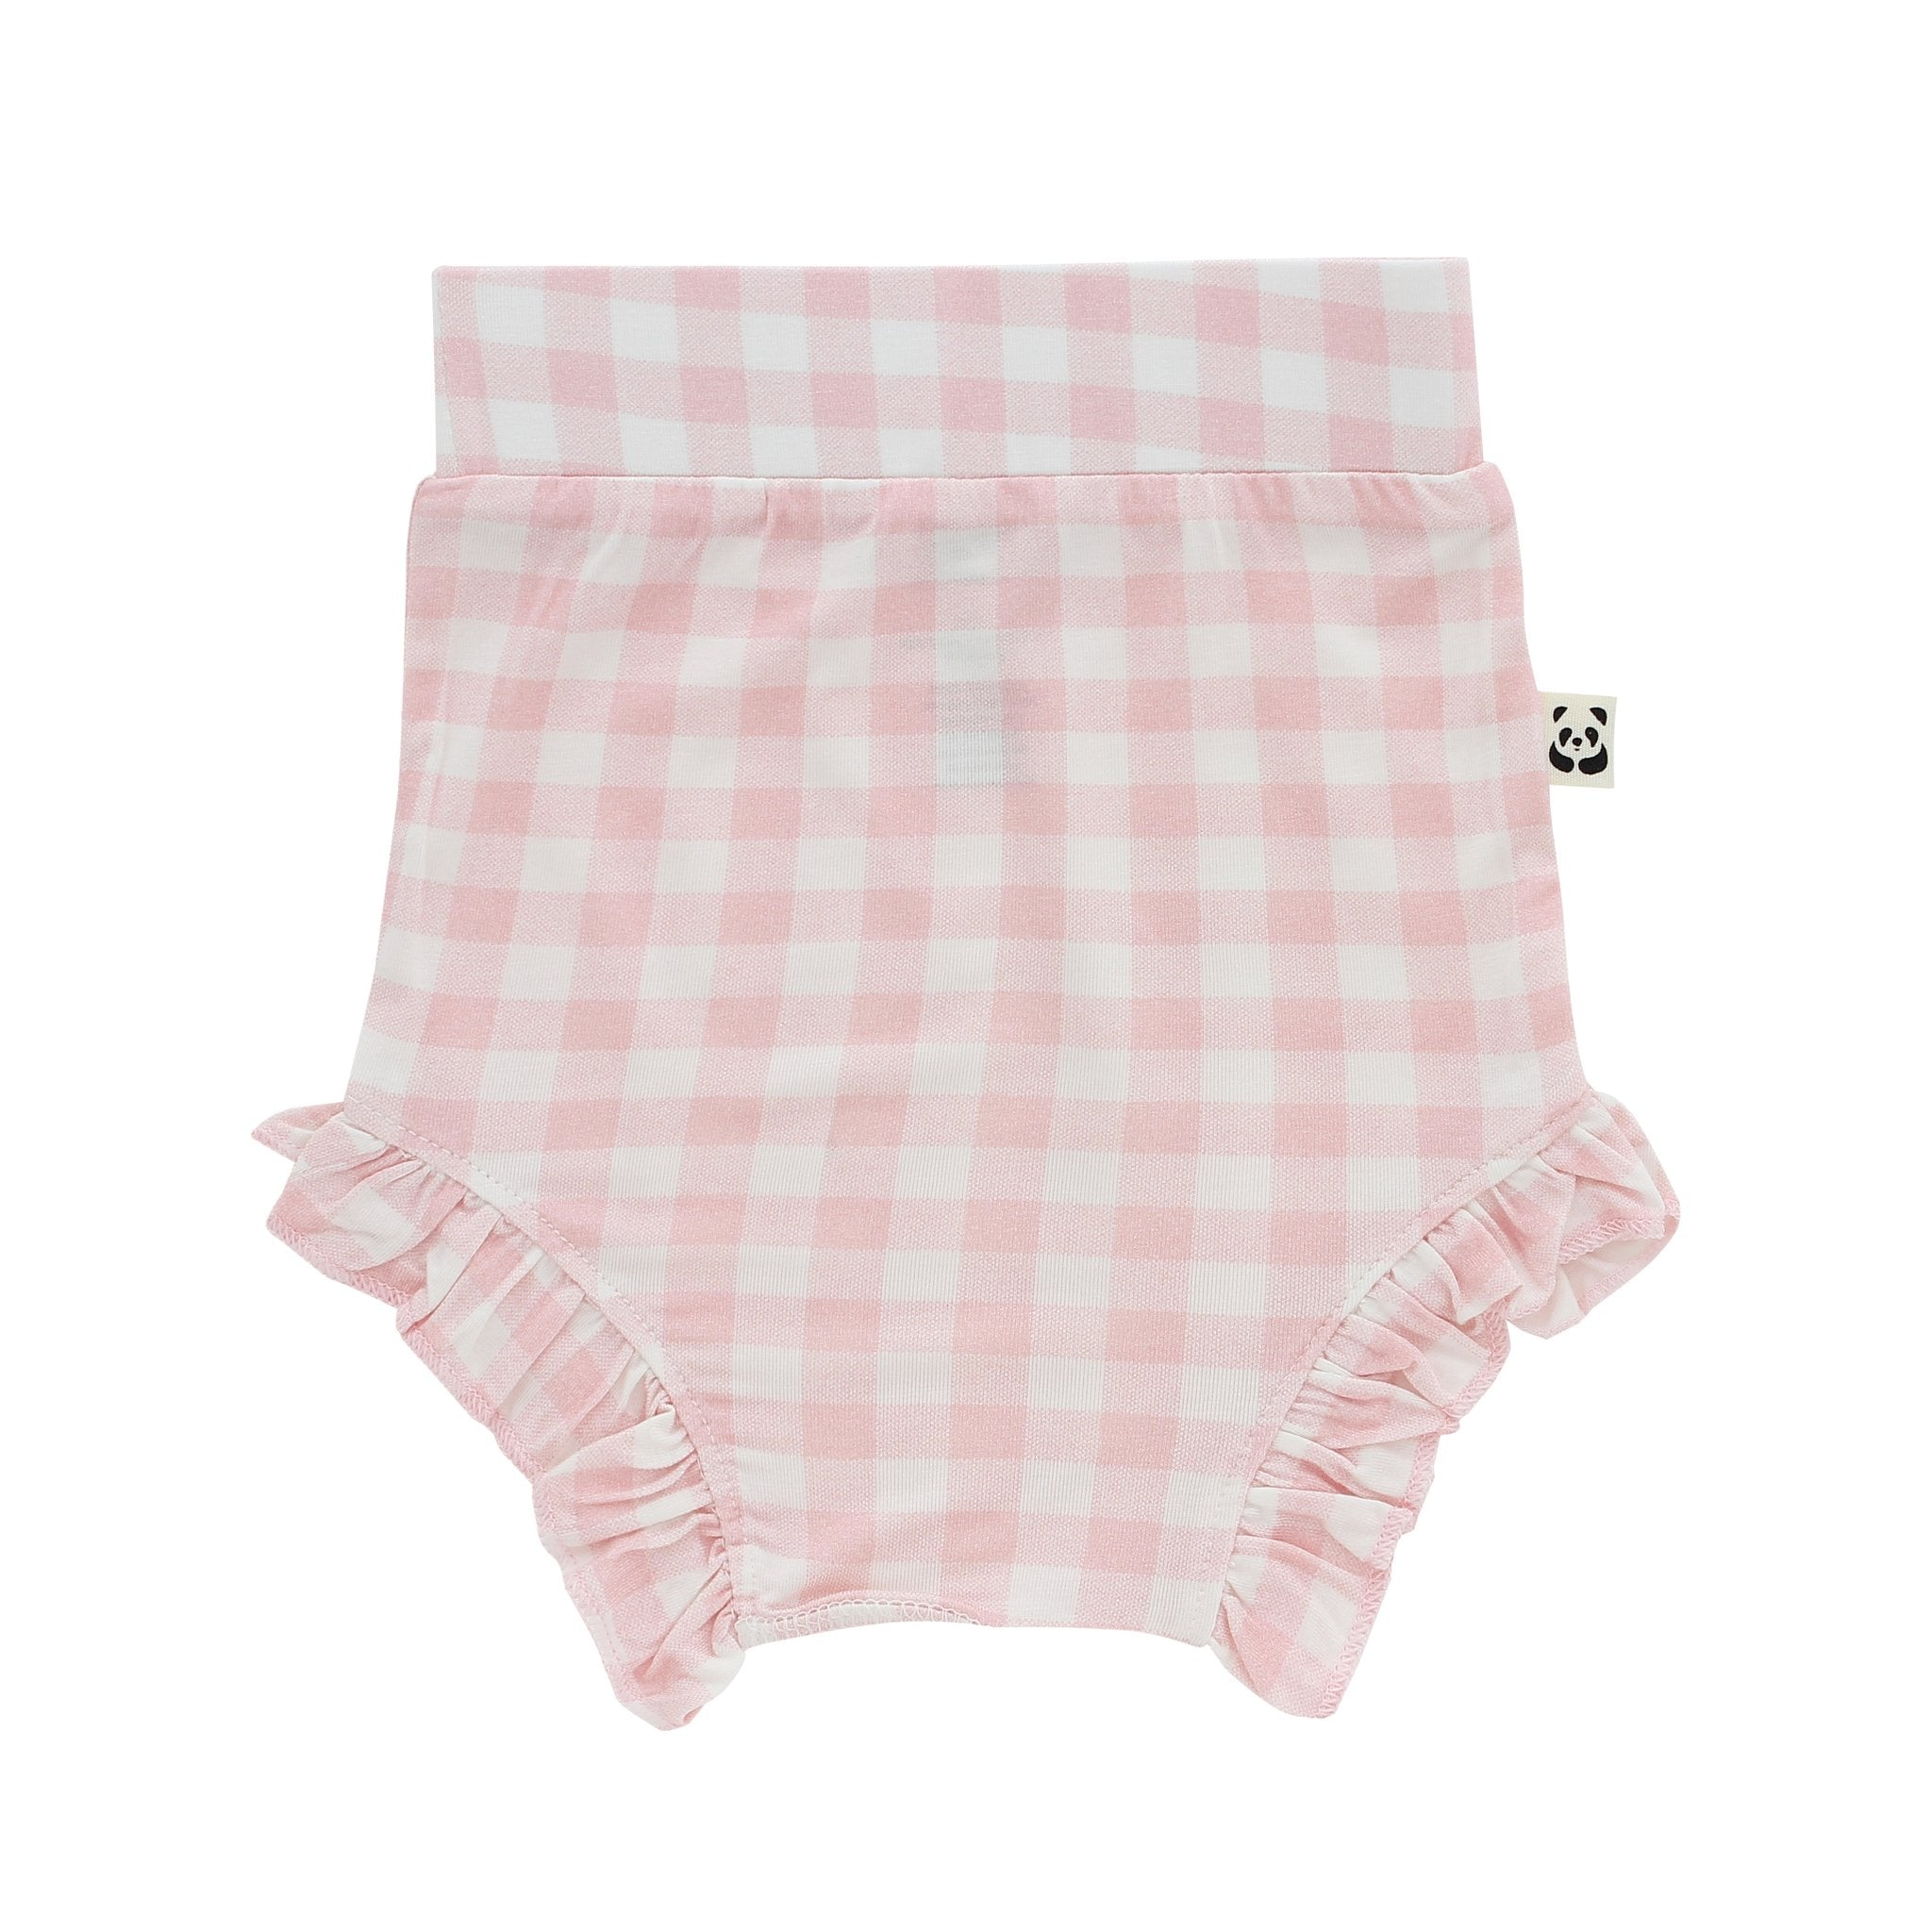 Bamberry Baby Girl Ruffled Bloomer Pink Gingham